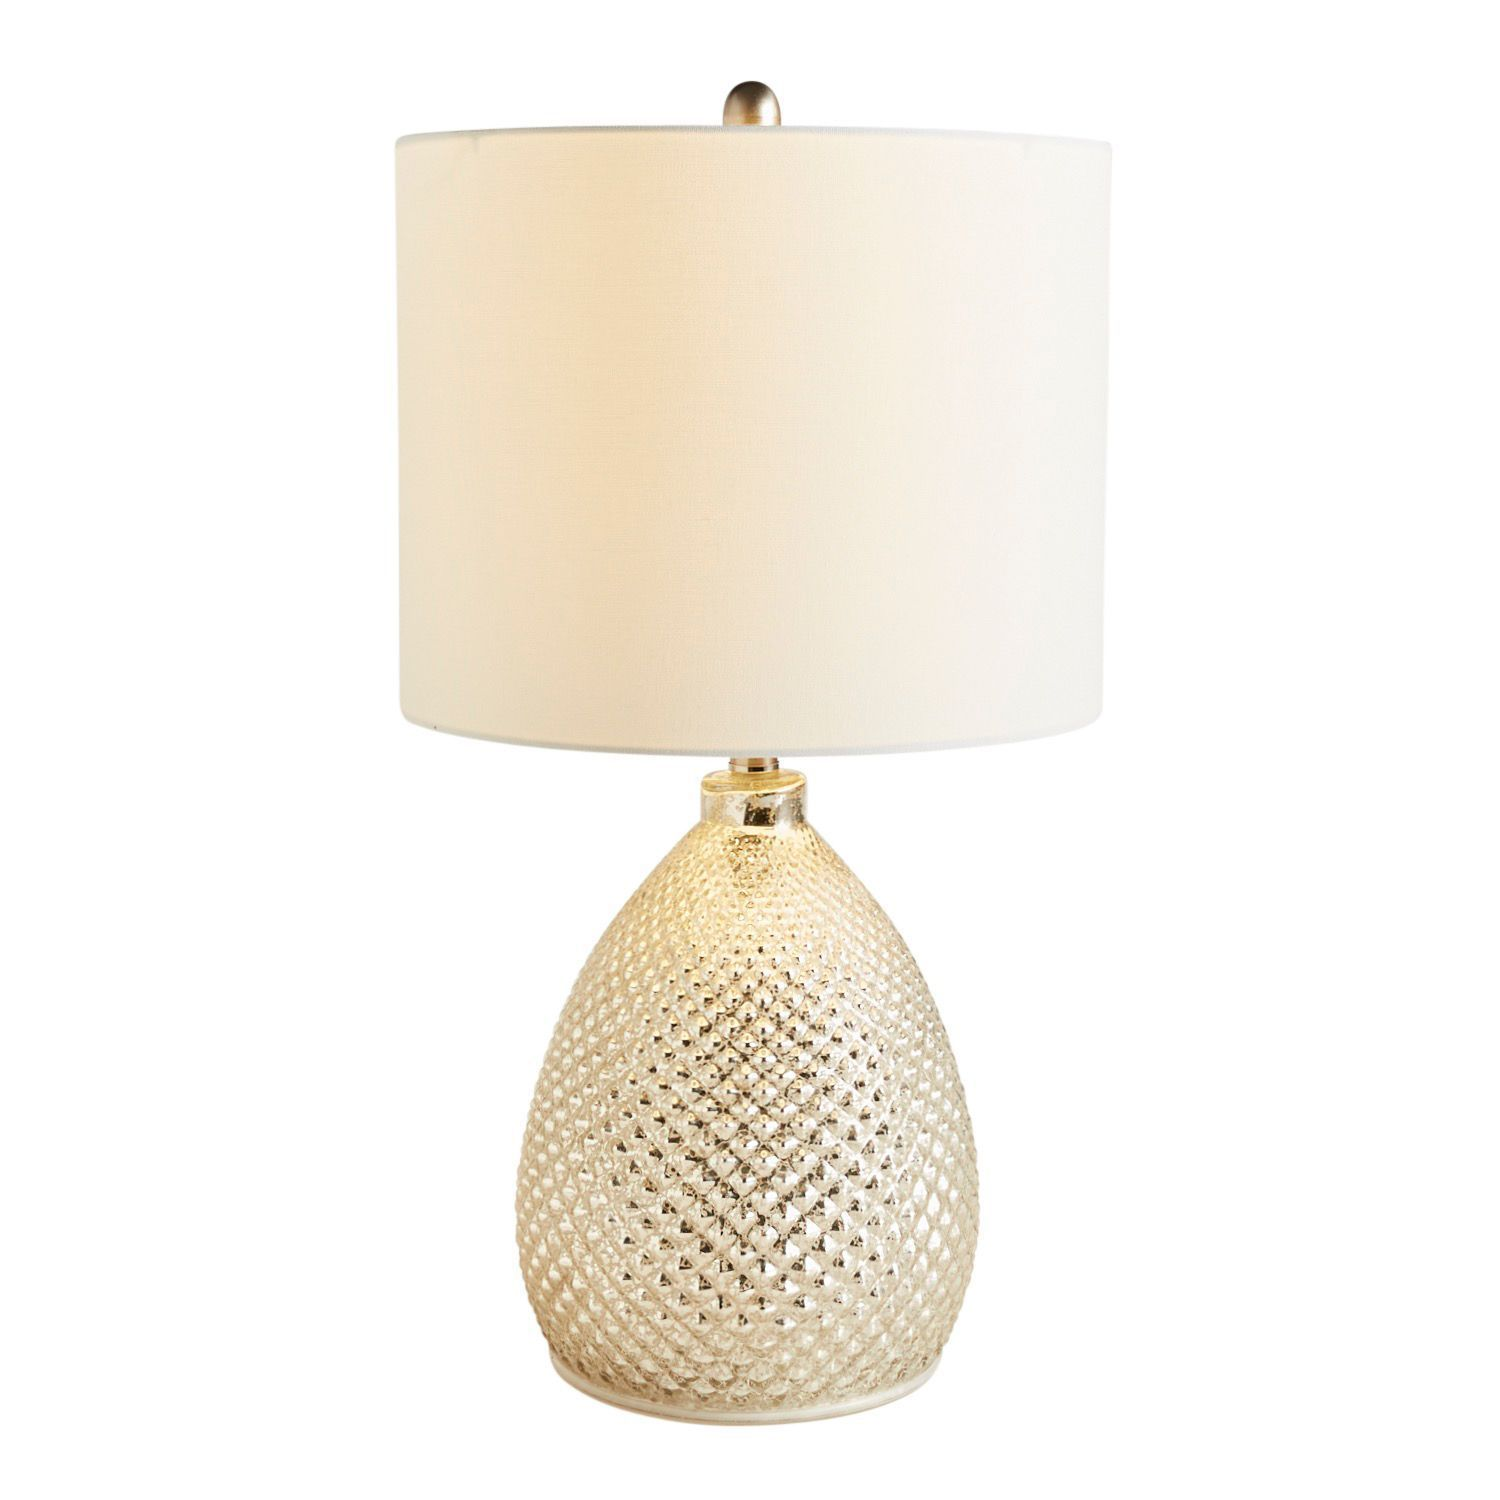 Picking Out The Best Lamp For Your Home Can Be Challenging As There Is Such A Huge Selection Of Lamps Available Lamp Mercury Glass Table Lamp Table Top Lamps